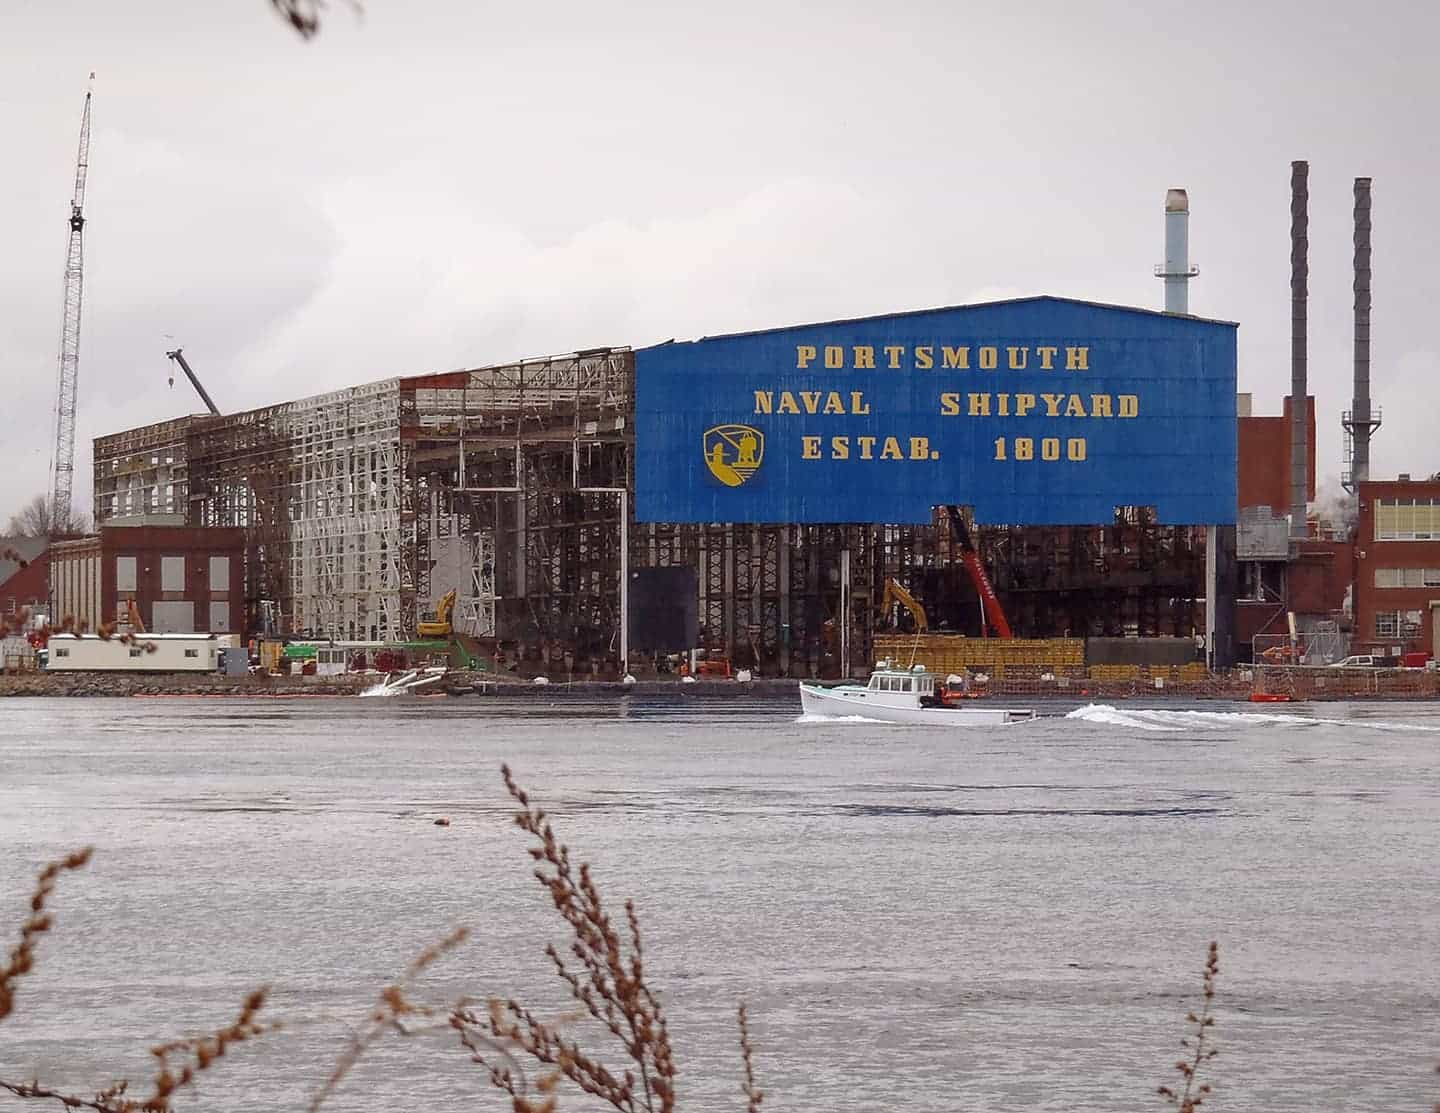 Portsmouth Naval Shipyard: From Sails to Atoms